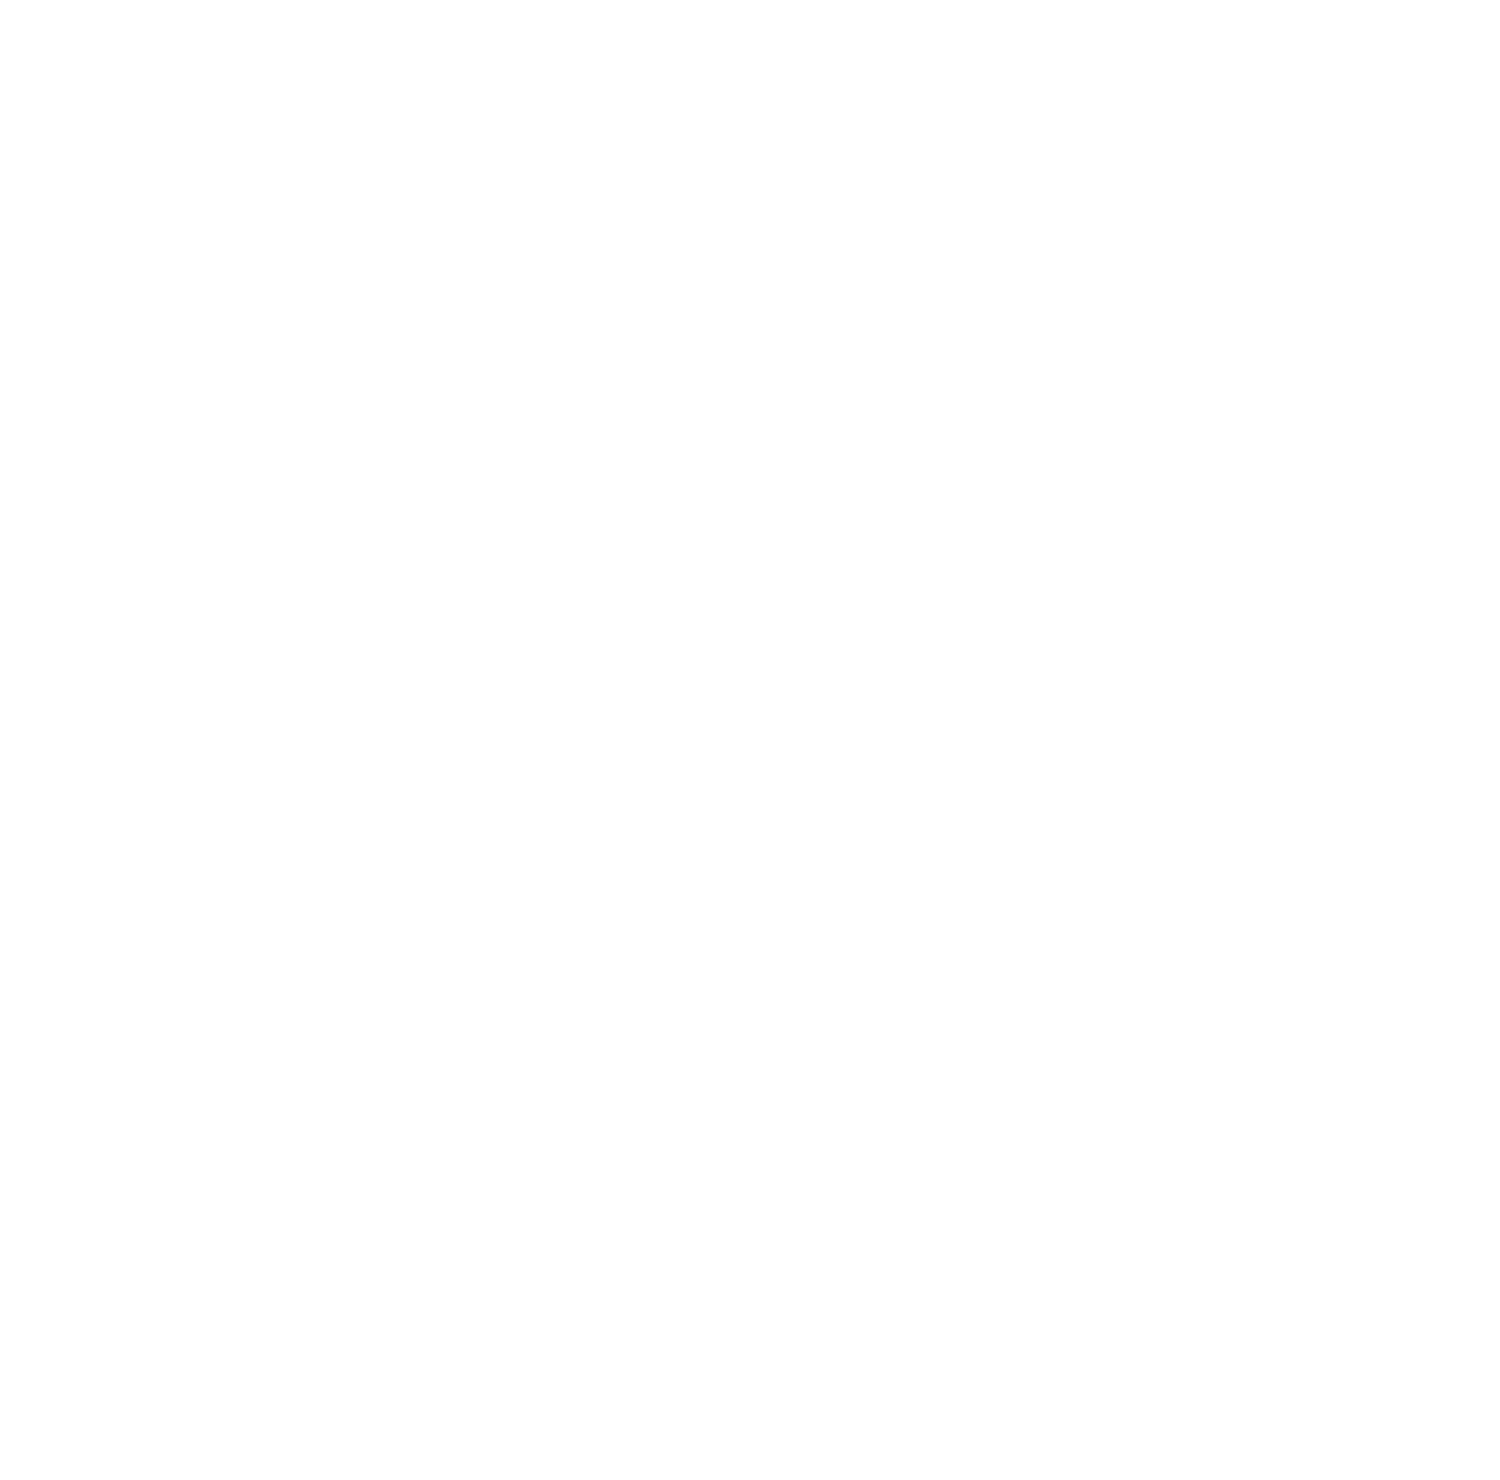 Oak Hills Brewing Co.